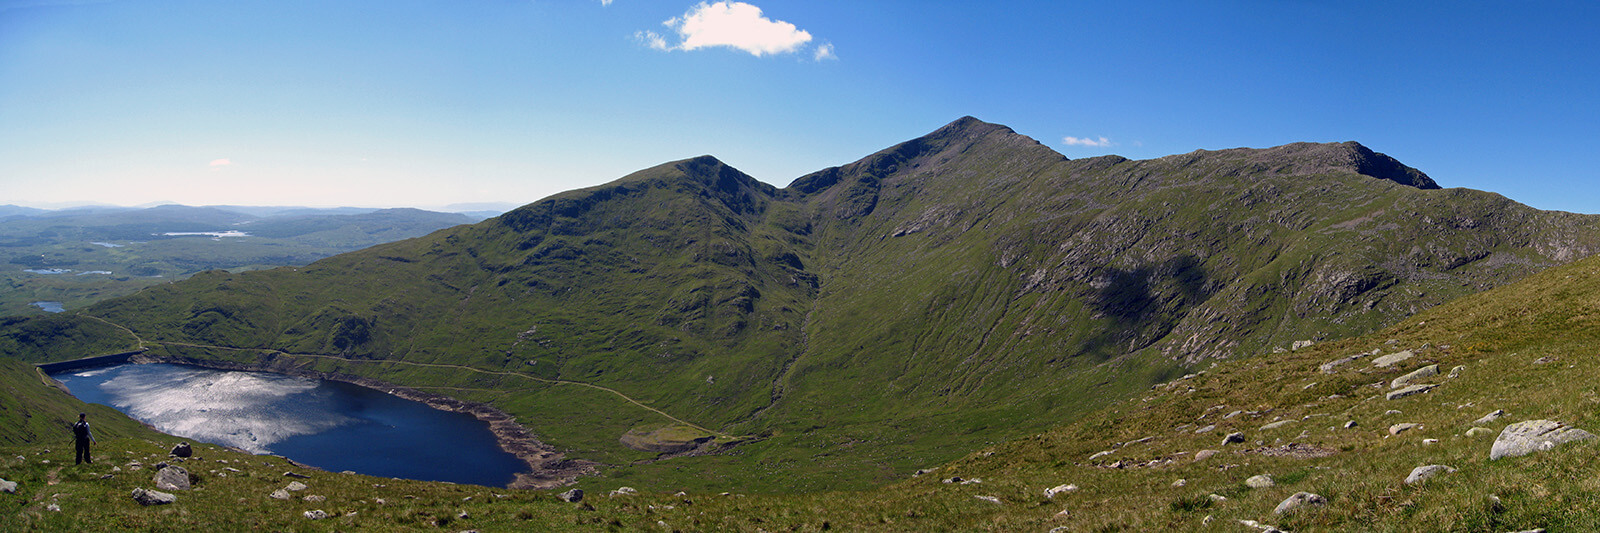 Ben Cruachan, also known as The Hollow Mountain, in Scotland